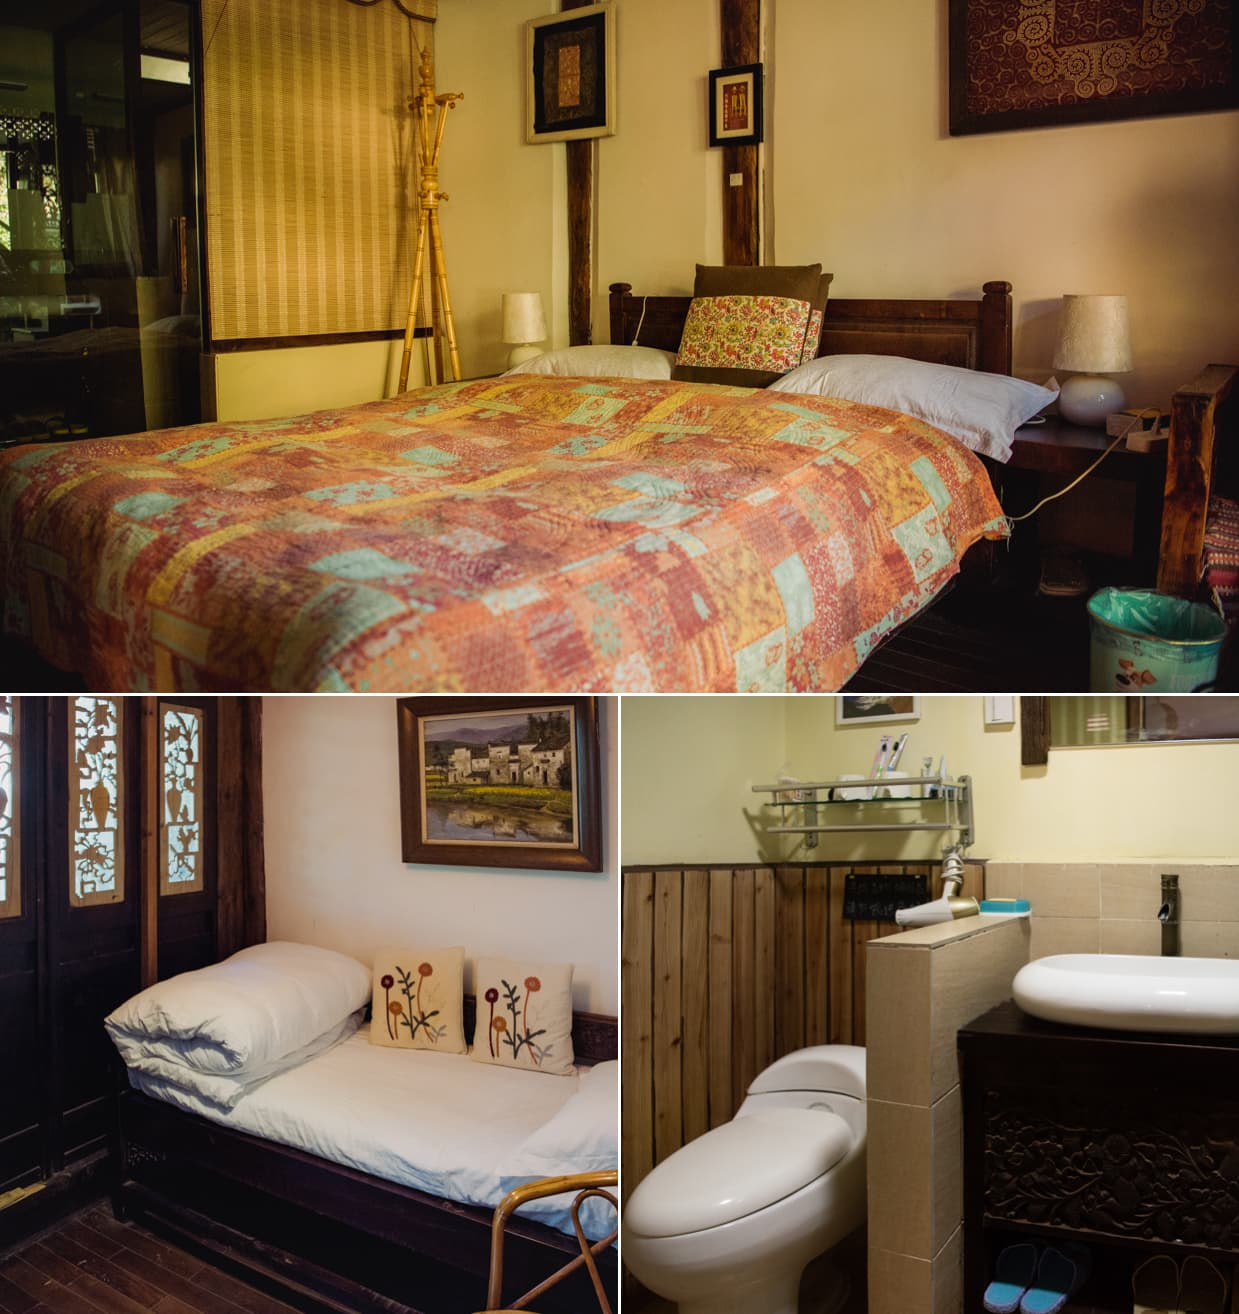 Our Shuhe Hotel: Beds and bathroom.